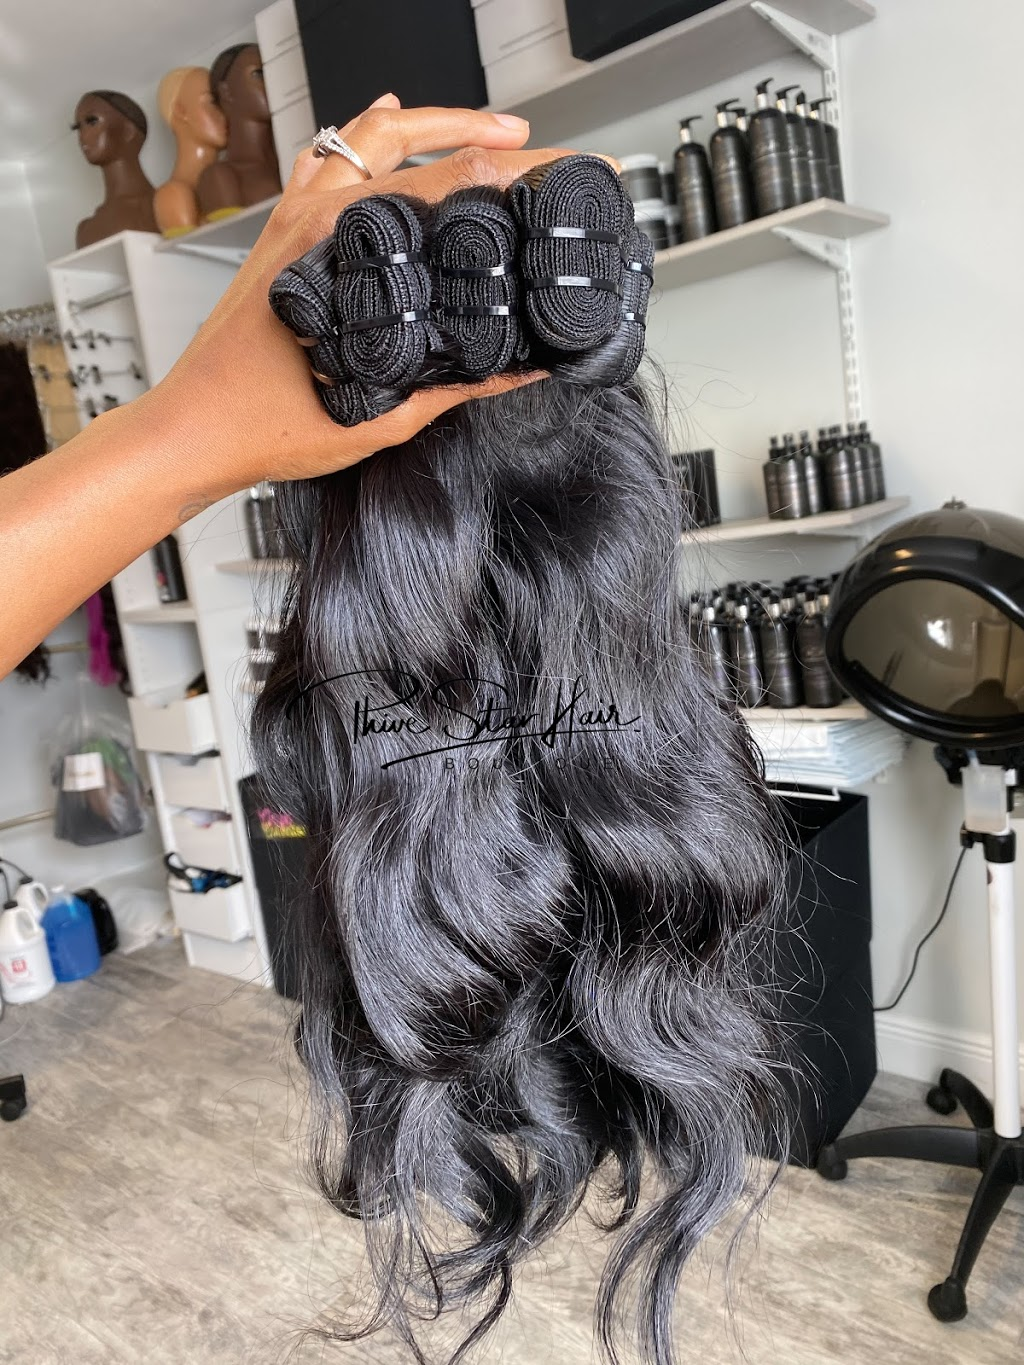 Phive Star Hair Boutique - hair care  | Photo 10 of 10 | Address: 320 N Magnolia Ave A5, Orlando, FL 32801, USA | Phone: (954) 243-7478